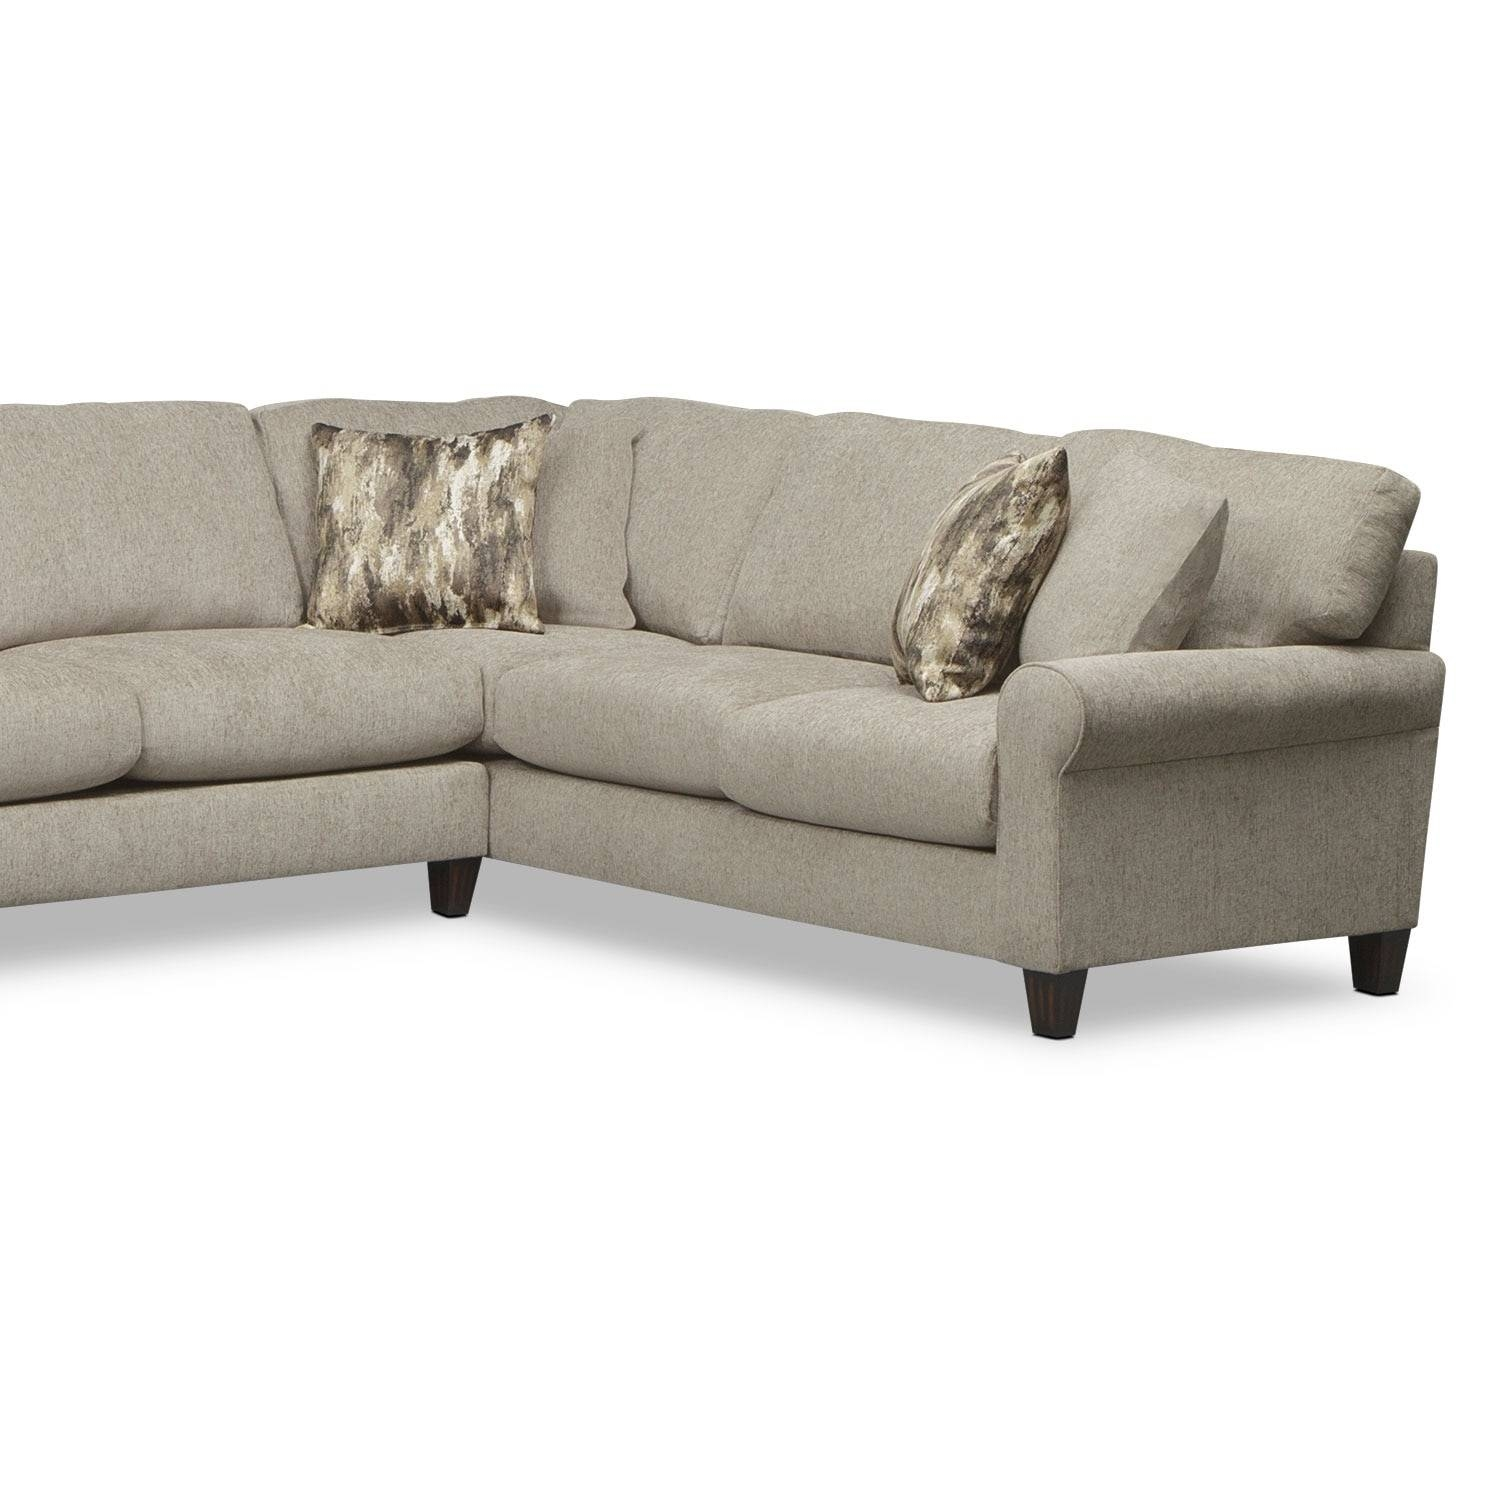 Karma 3-Piece Sectional With Left-Facing Cuddler - Mink | Value for Cuddler Sectional Sofa (Image 14 of 30)